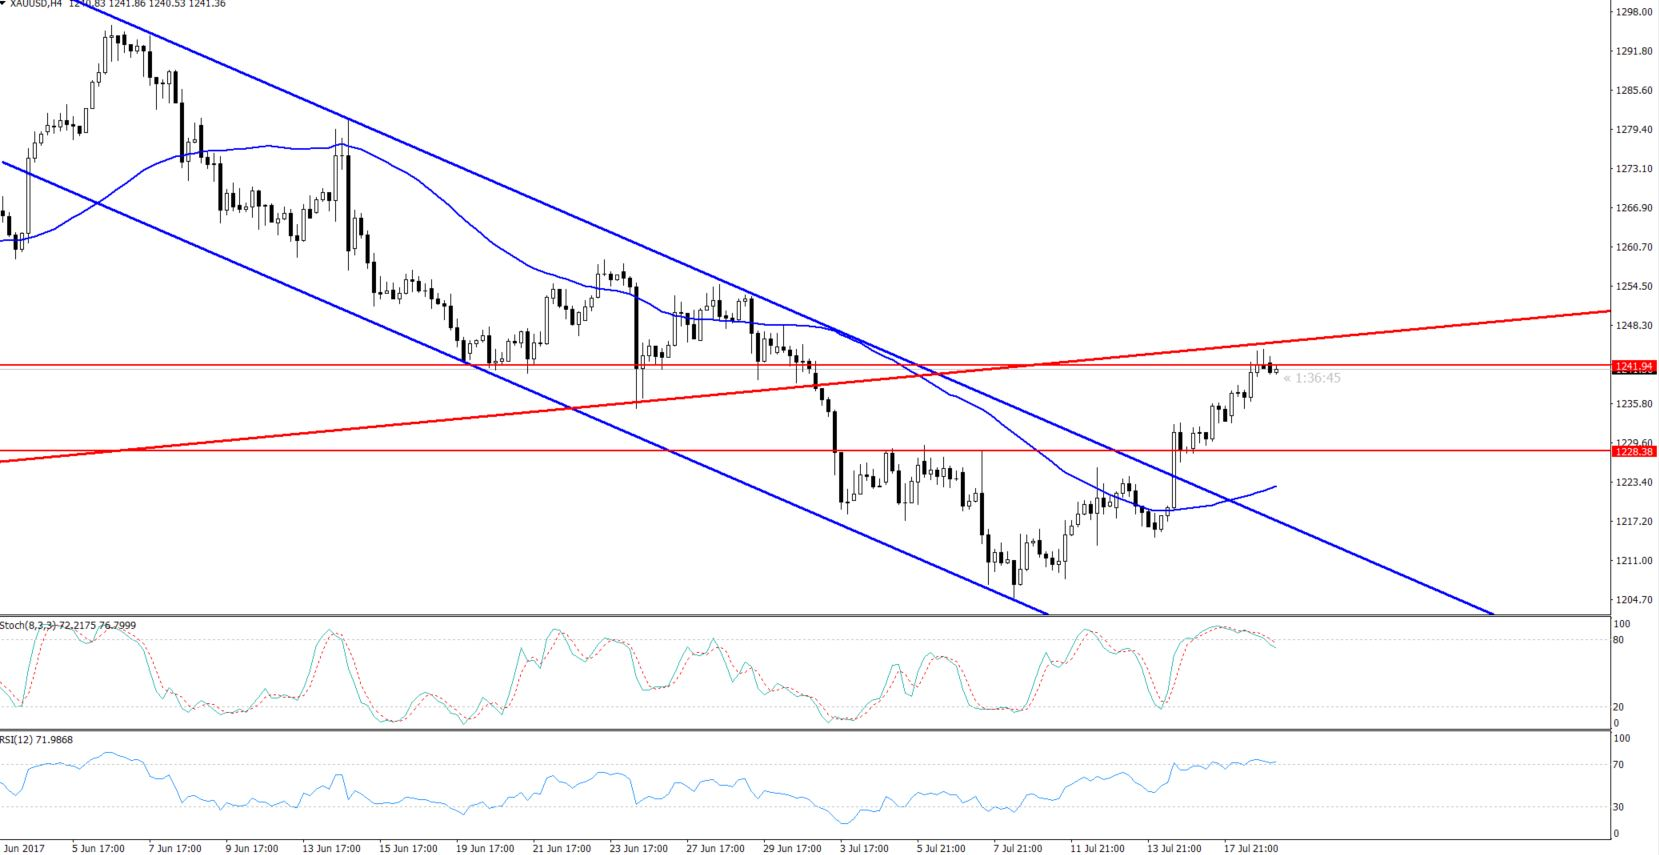 Gold - 4 Hours Chart - Bearish Channel Breakout